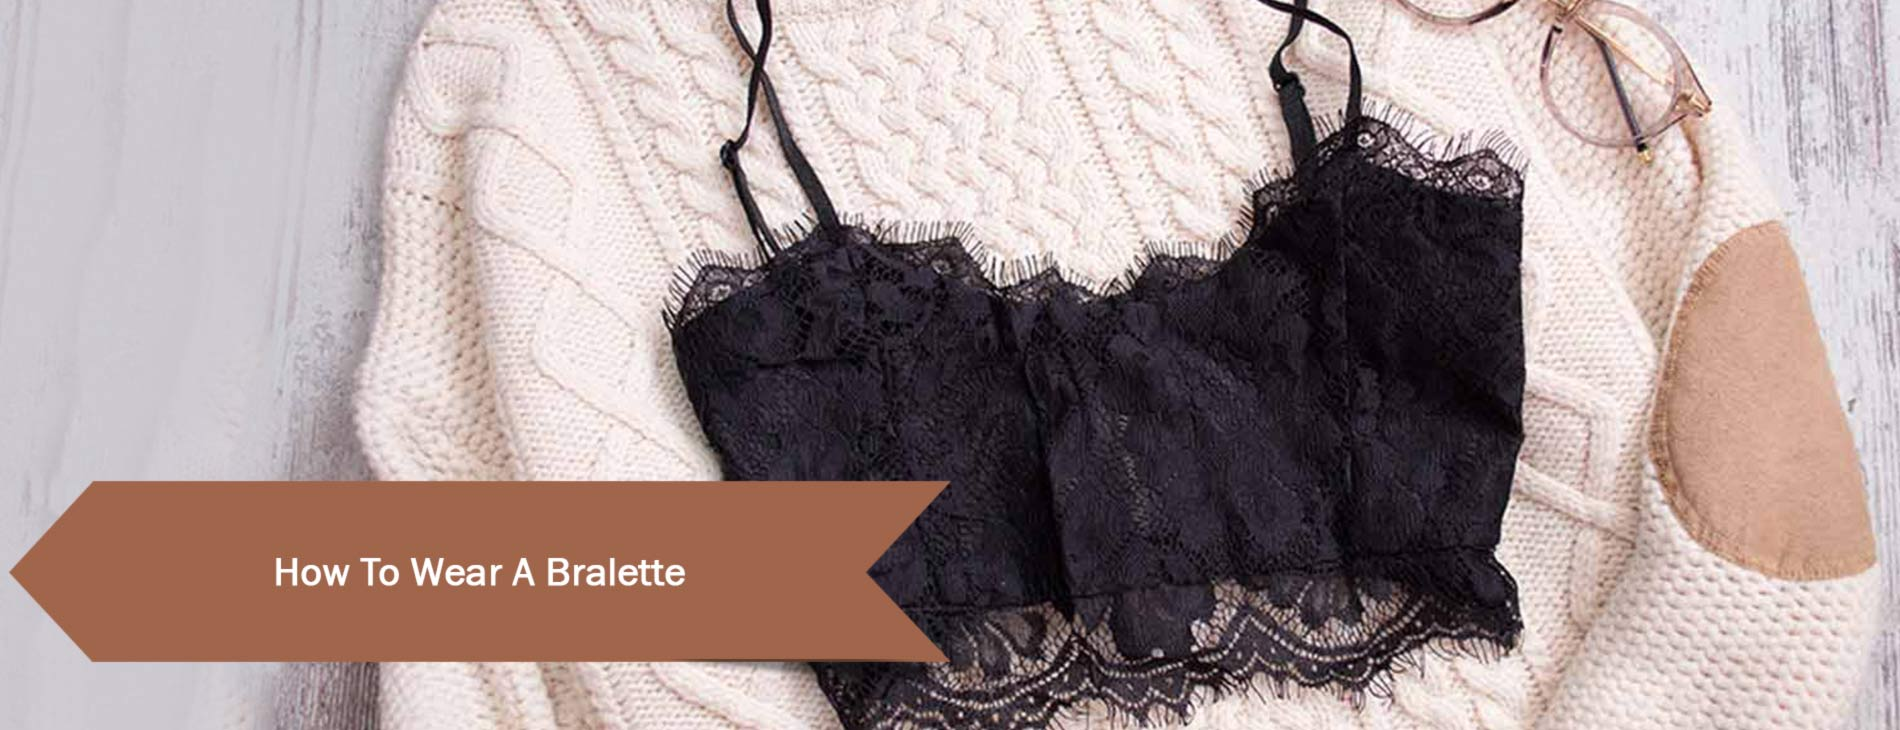 How-To-Wear-A-Bralette